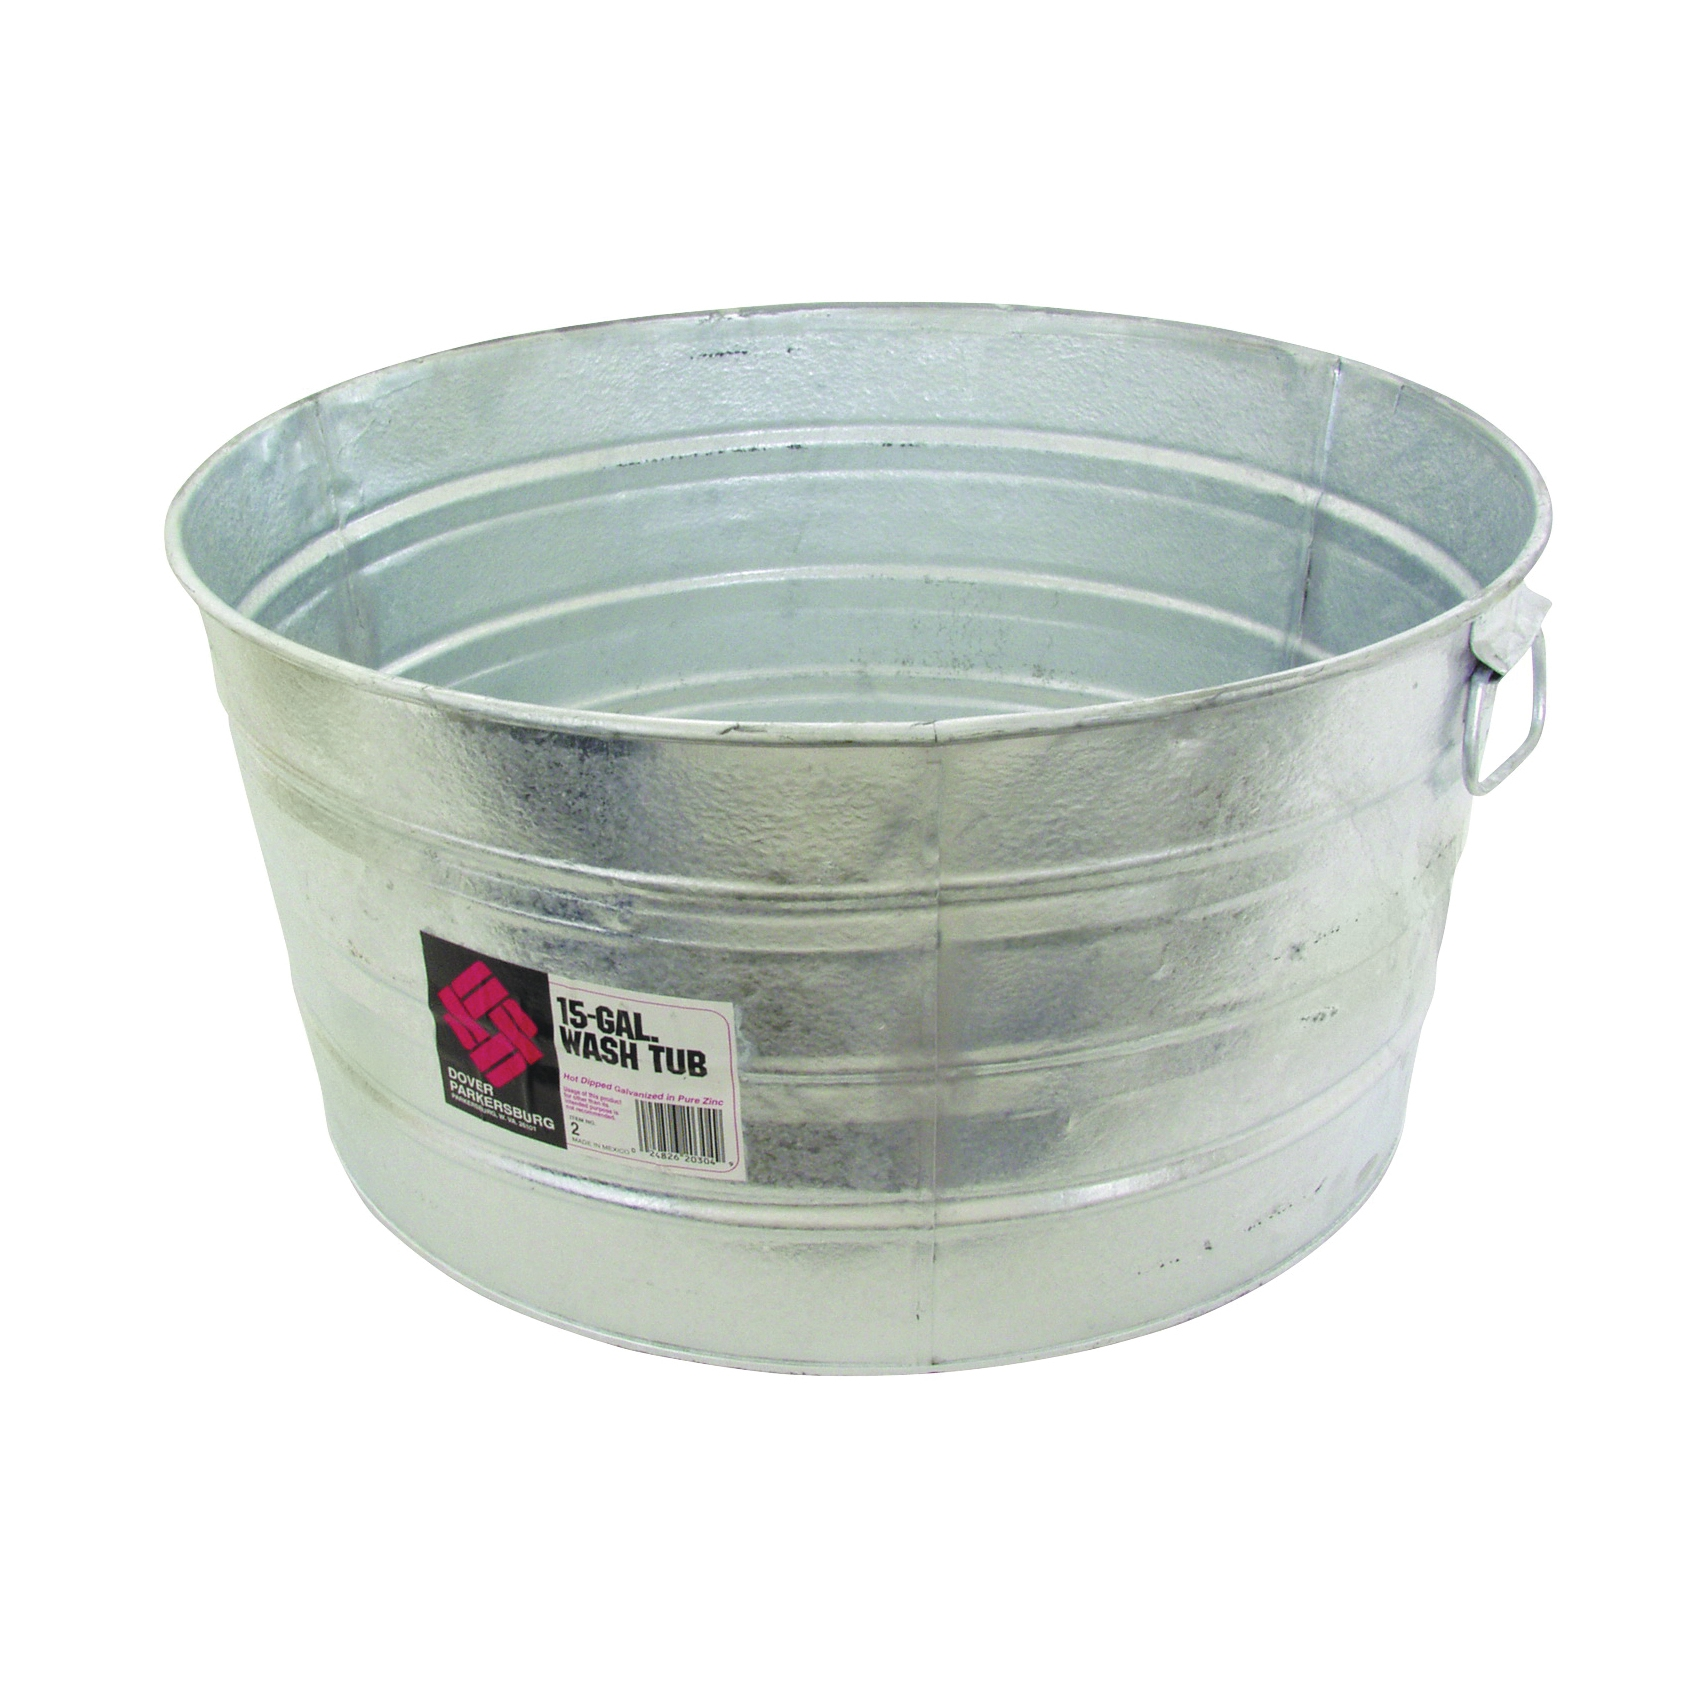 Picture of Behrens 3 Wash Tub, 17 gal Capacity, Steel